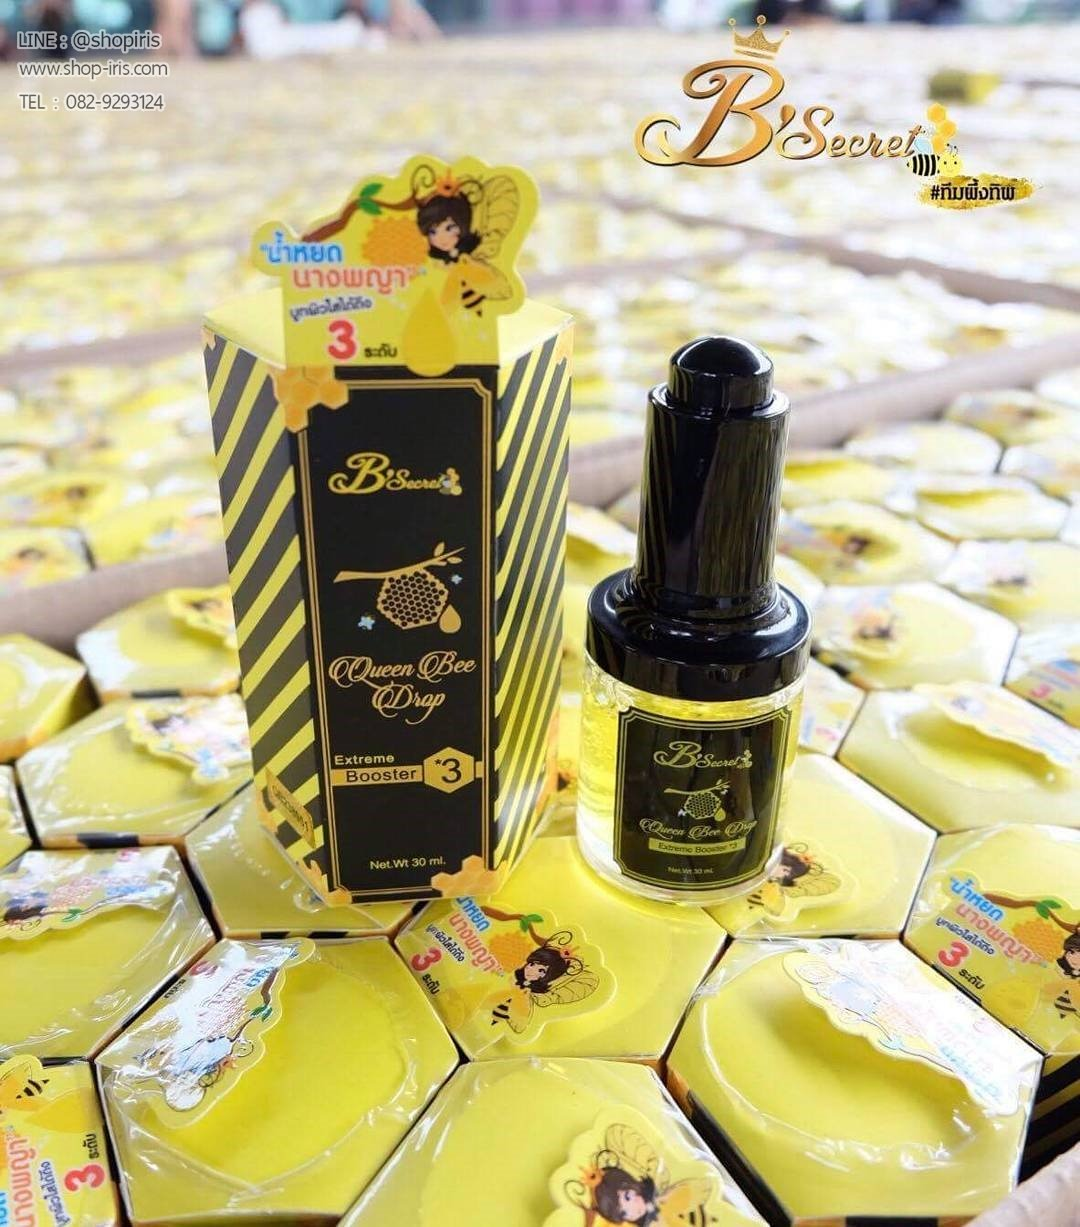 B'SECRET FACIAL 4 BOXES OF SERUM QUEEN BEE DROP BOOSTER BRIGHTNESS WRINKLES EXTREME AGE 30ML [GET FREE BEAUTY GIFT FOR YOU] by B'SECRET FACIAL